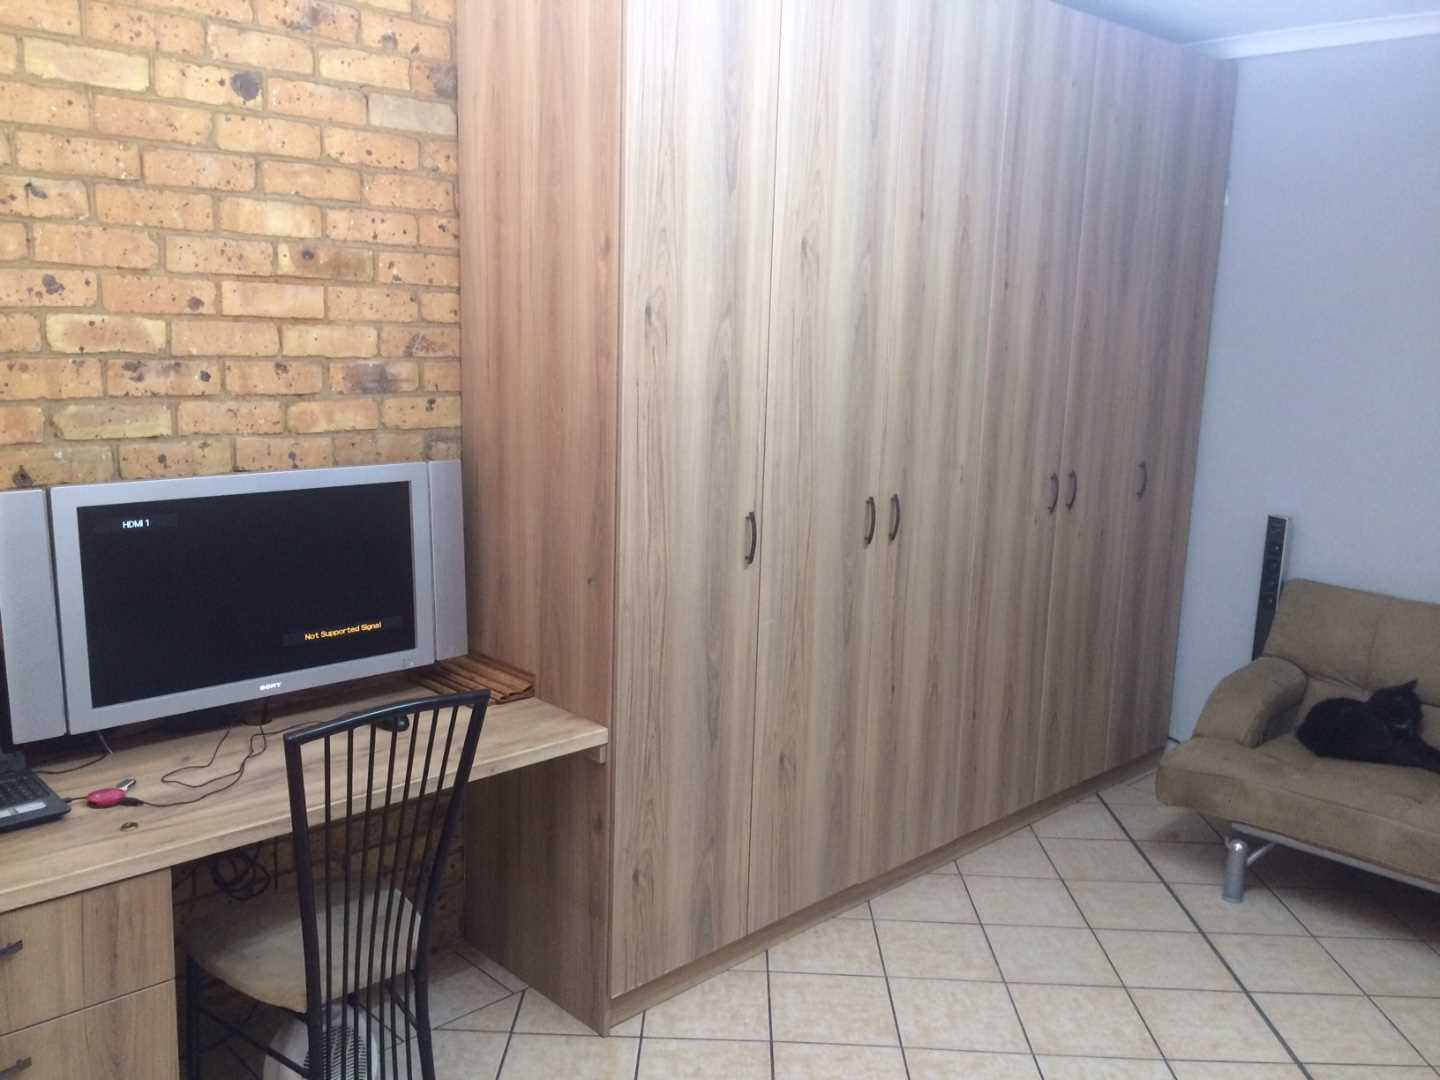 Cupboards Excluded - Offer can be made to current tenant if still in.